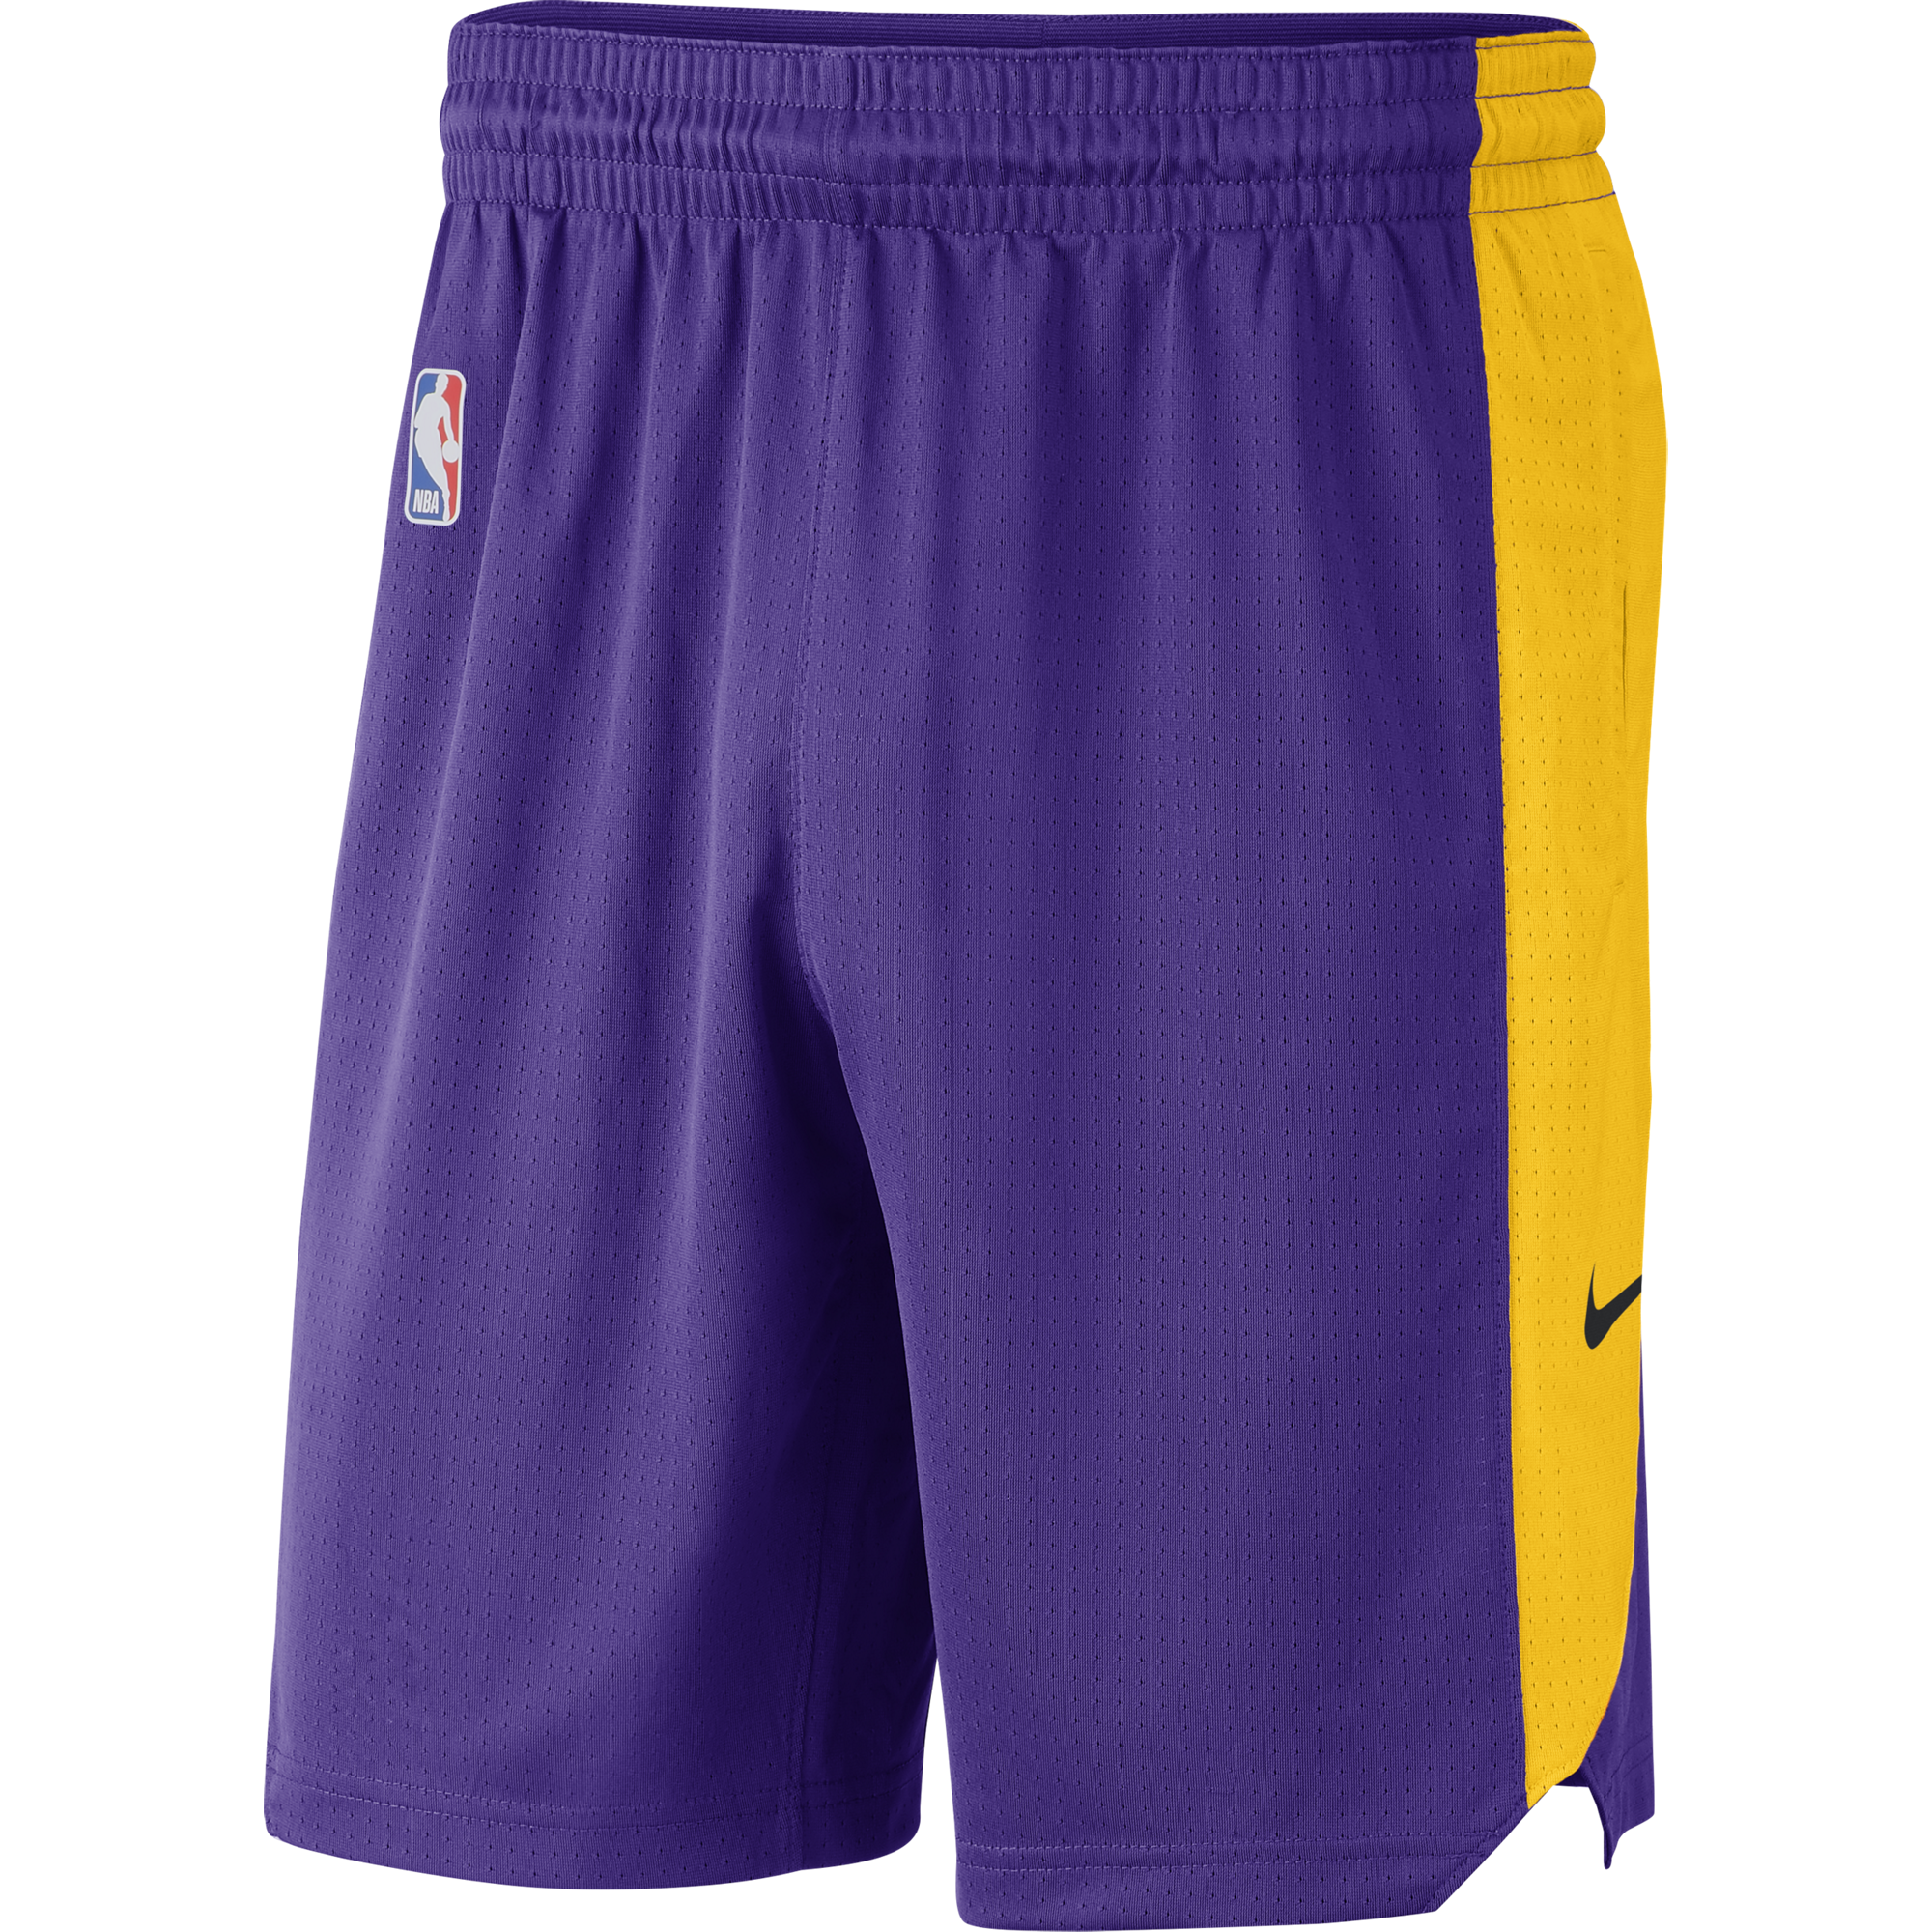 NIKE NBA LOS ANGELES LAKERS PRACTICE SHORTS